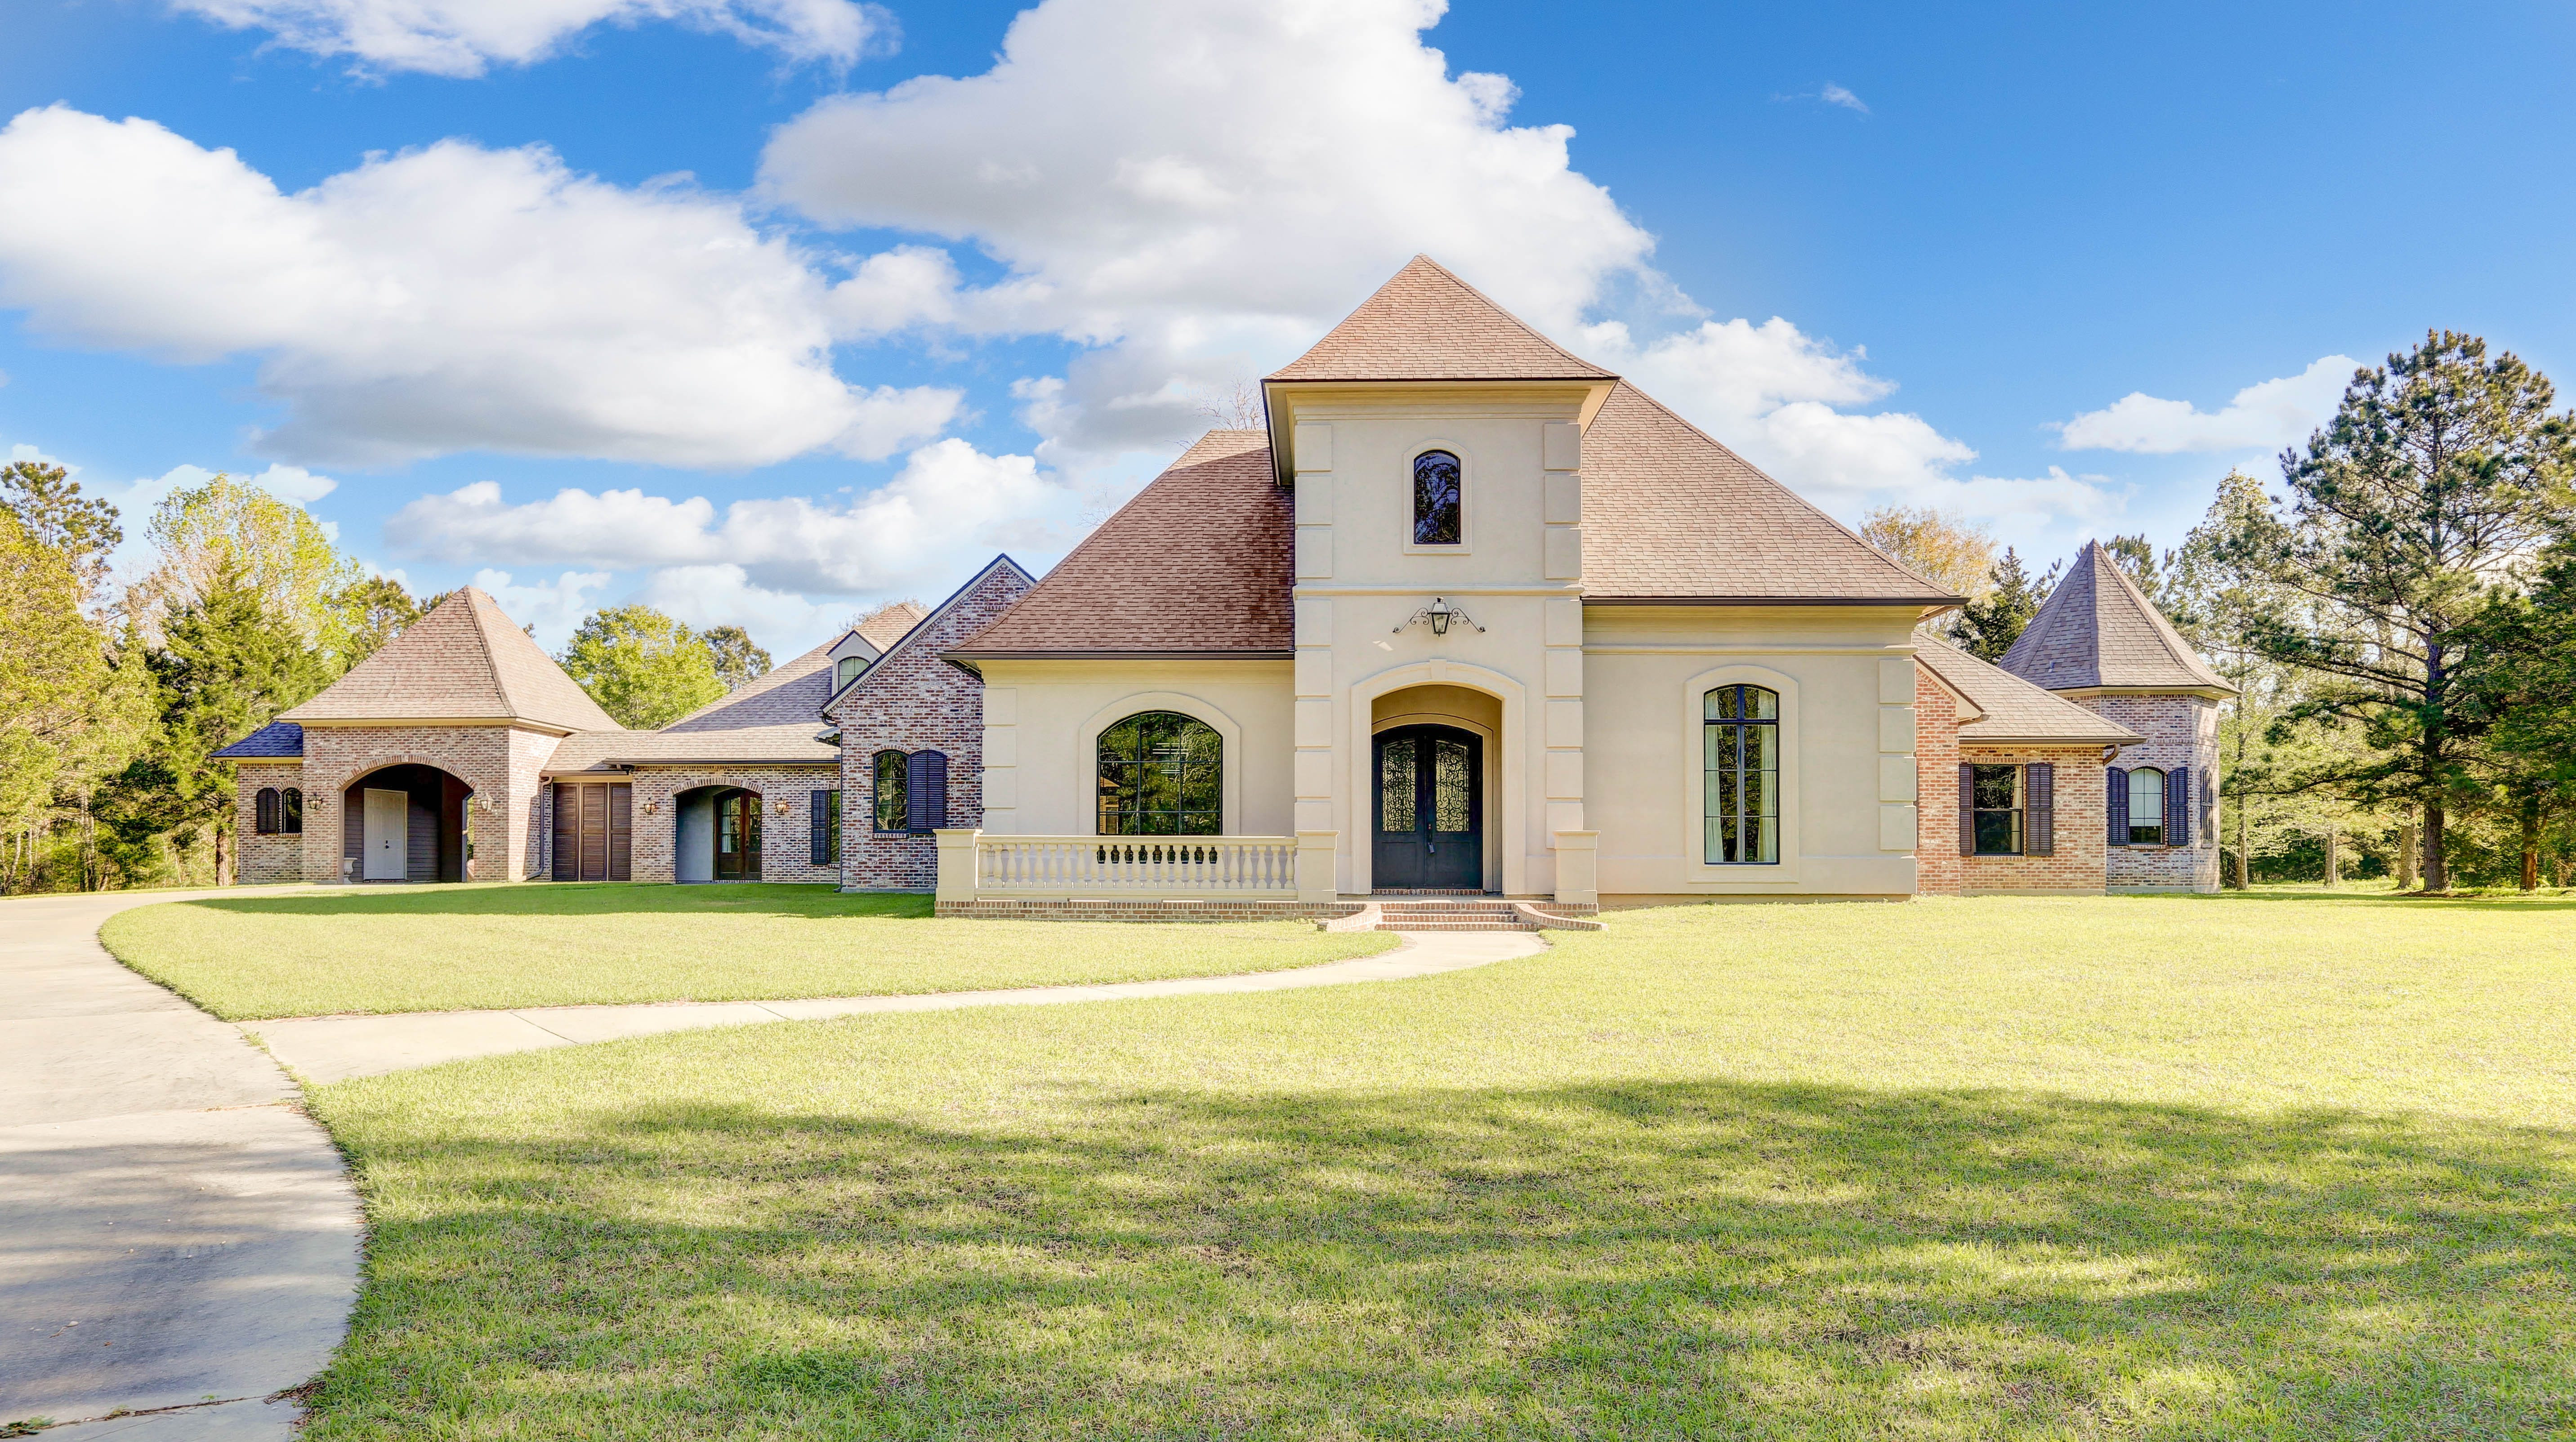 This 5 bedroom, 4 bath home is located at 6137 Hwy 93 in Grand Coteau. It is listed at $1,300,000.